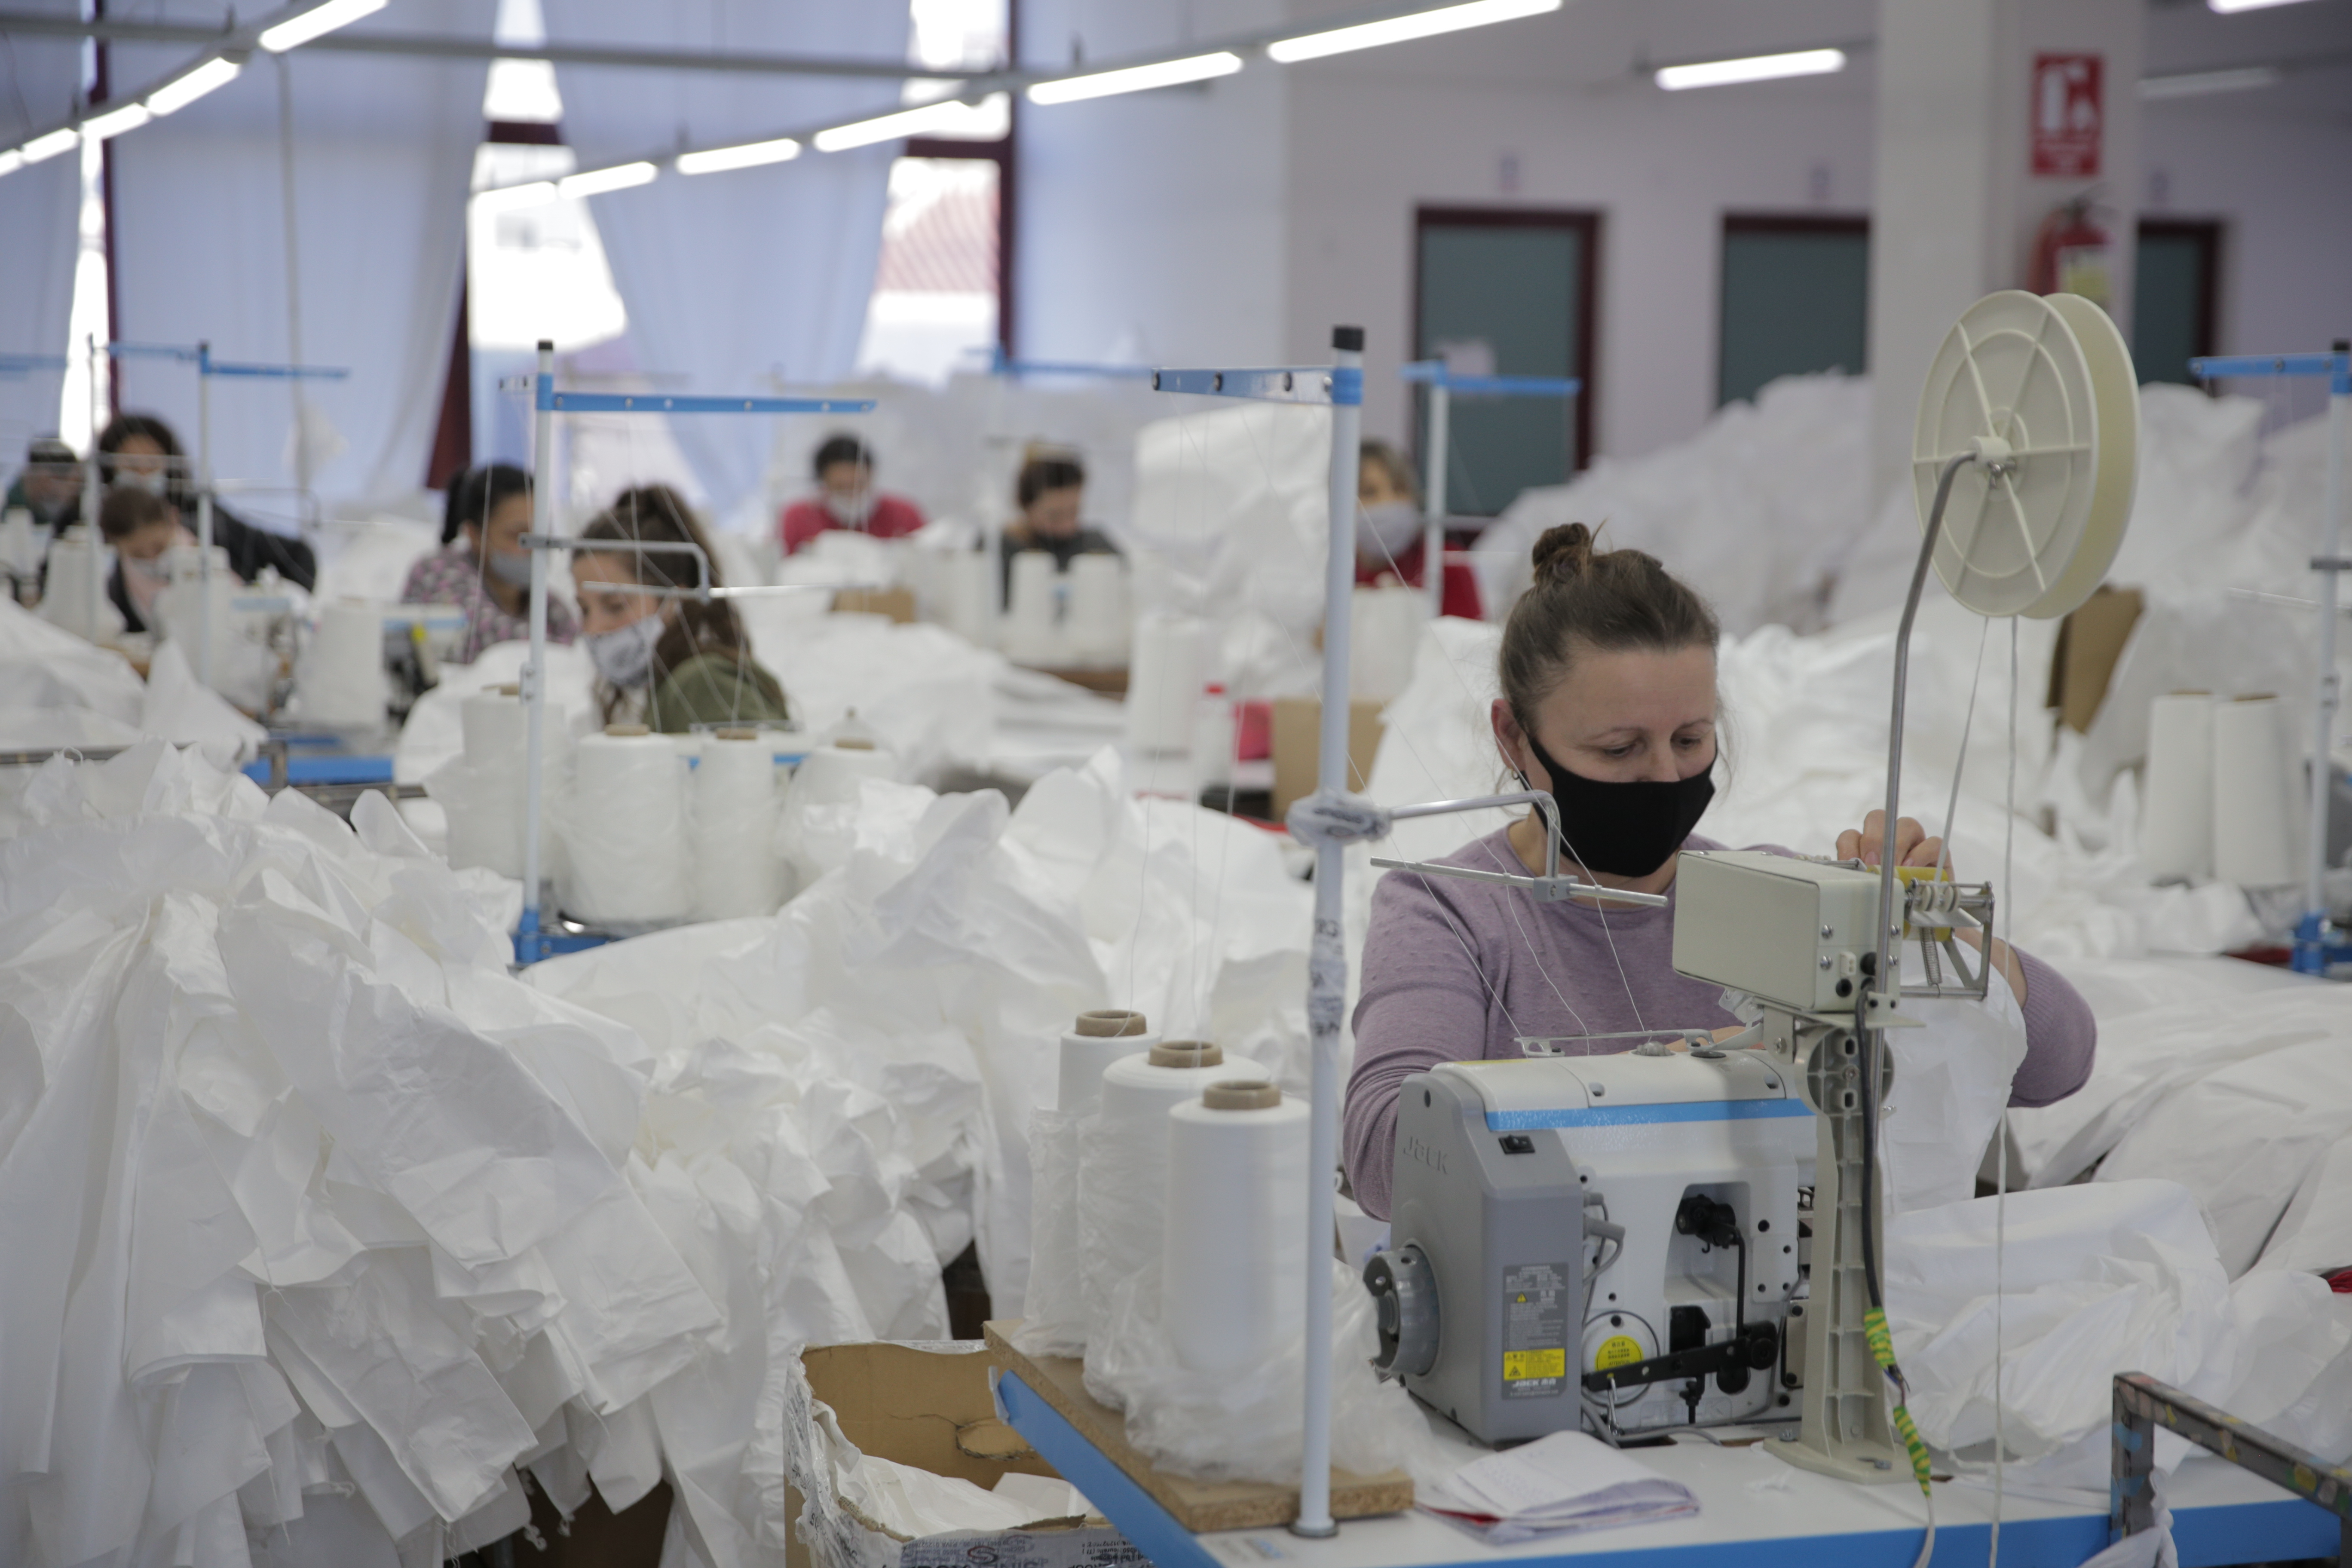 The International Labour Organization (ILO) with the support of the Government of Sweden provides cash transfers for laid-off women workers in the textile and footwear sectors